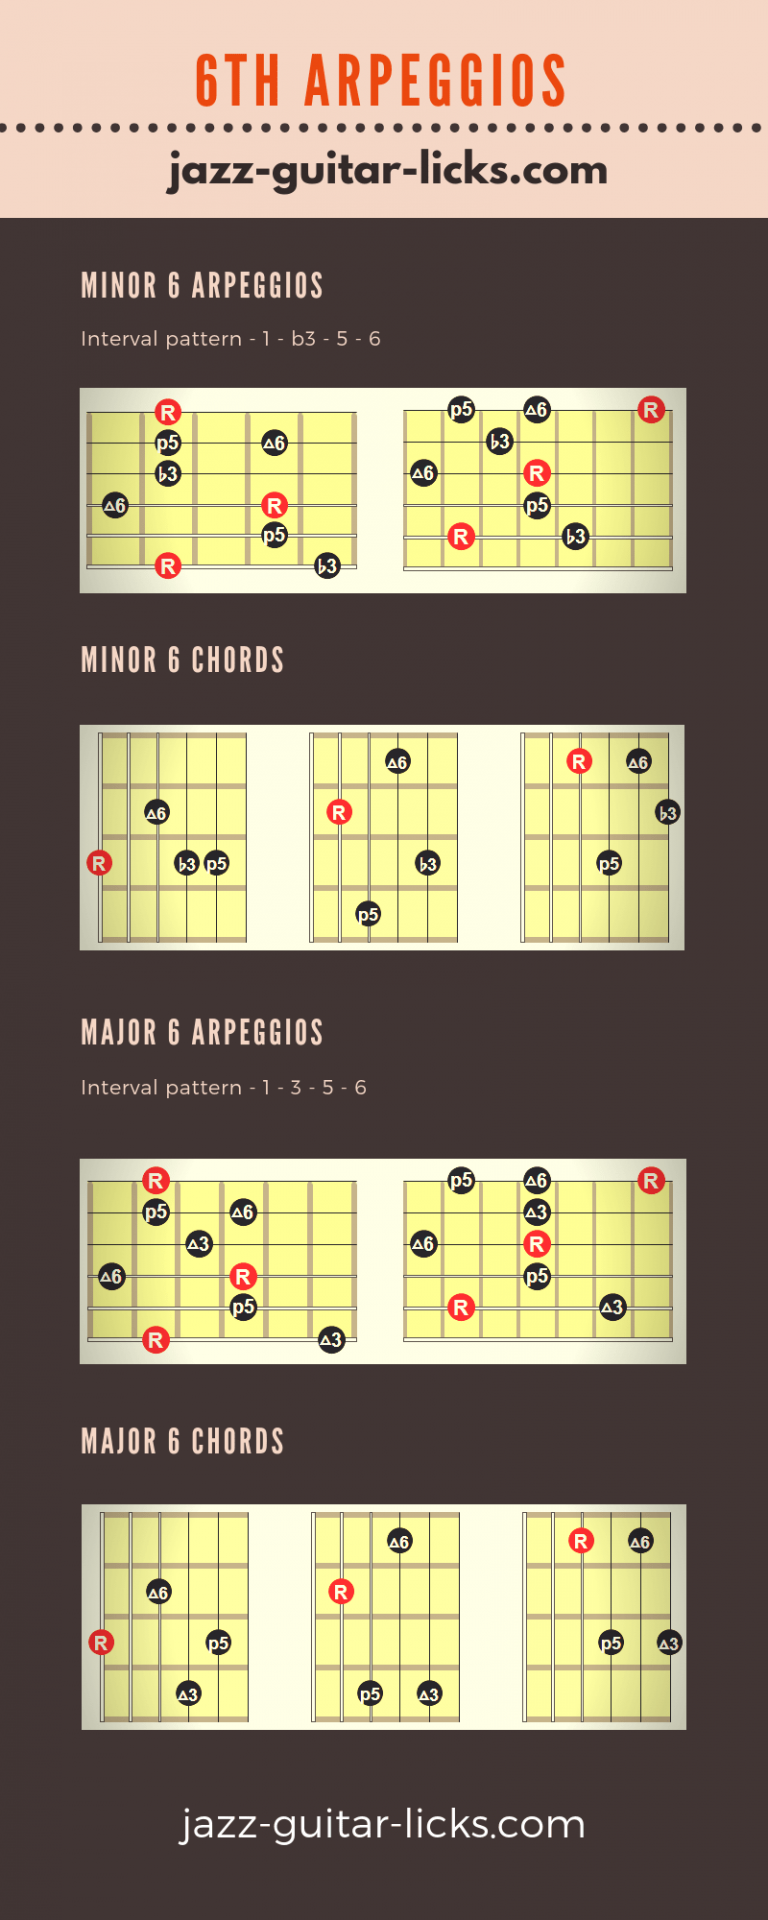 Major And Minor 6 Guitar Arpeggios And Chords Infographic